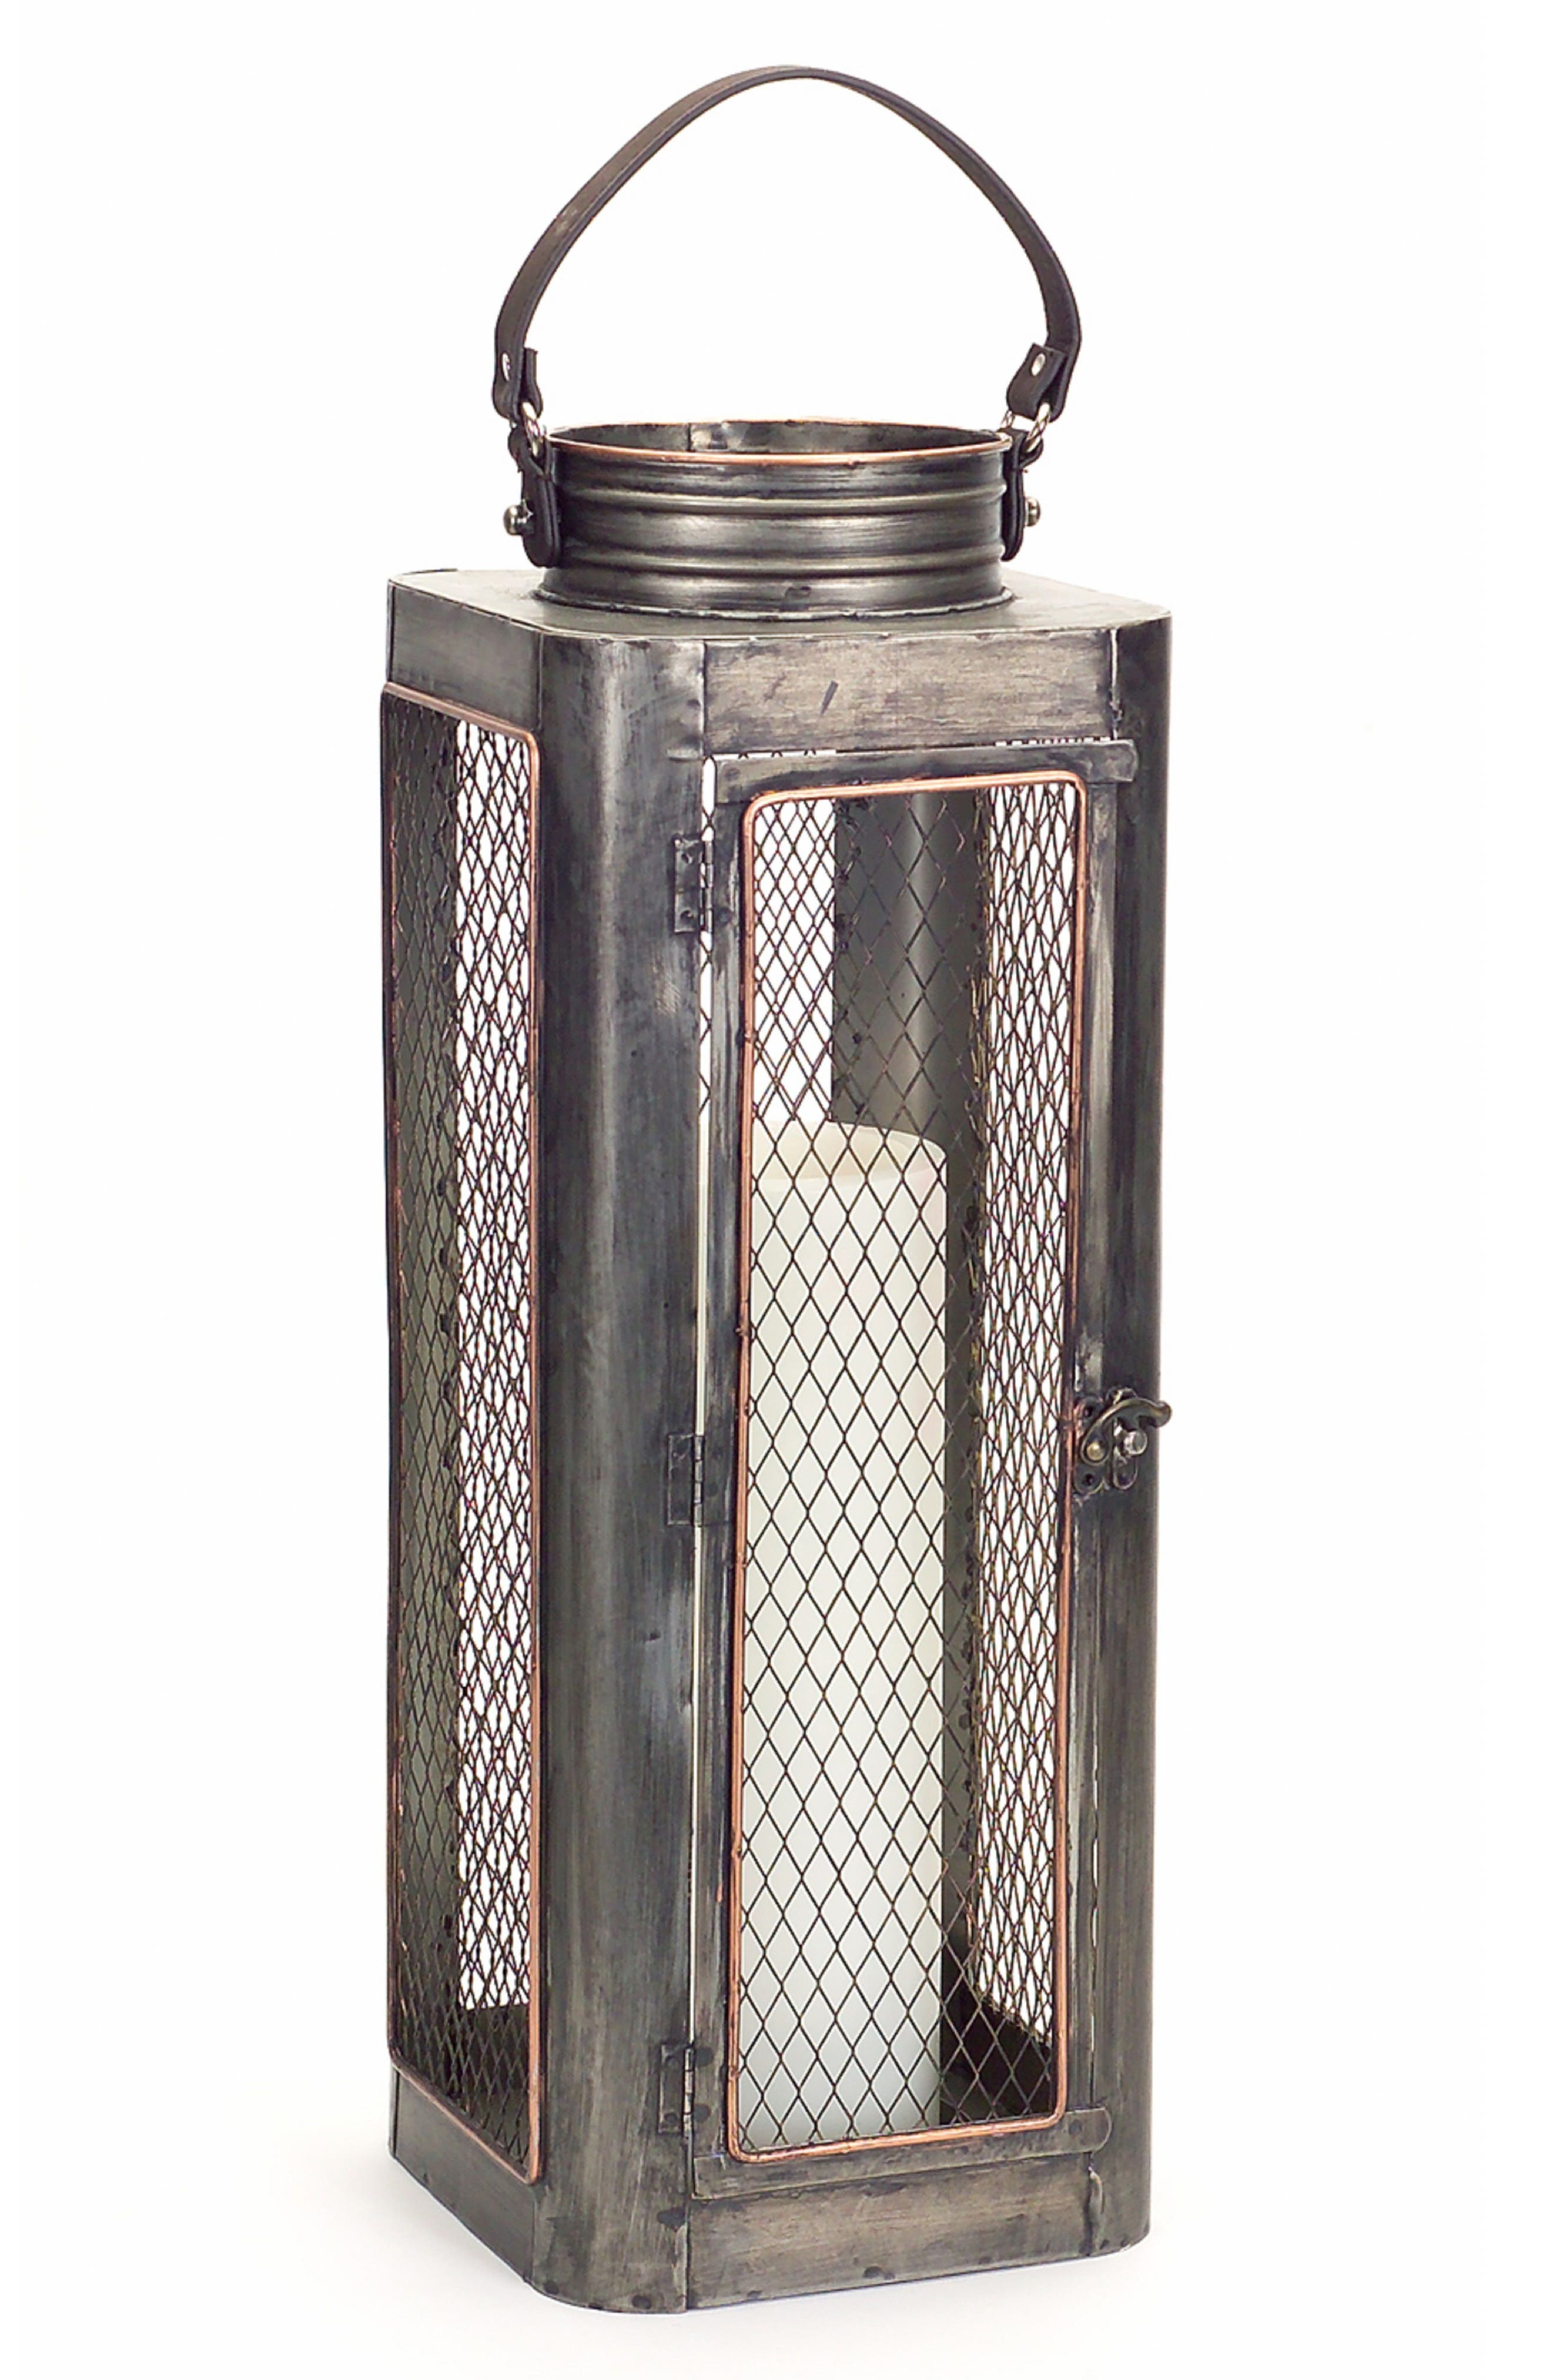 Melrose Gifts Lantern with Leather Handle